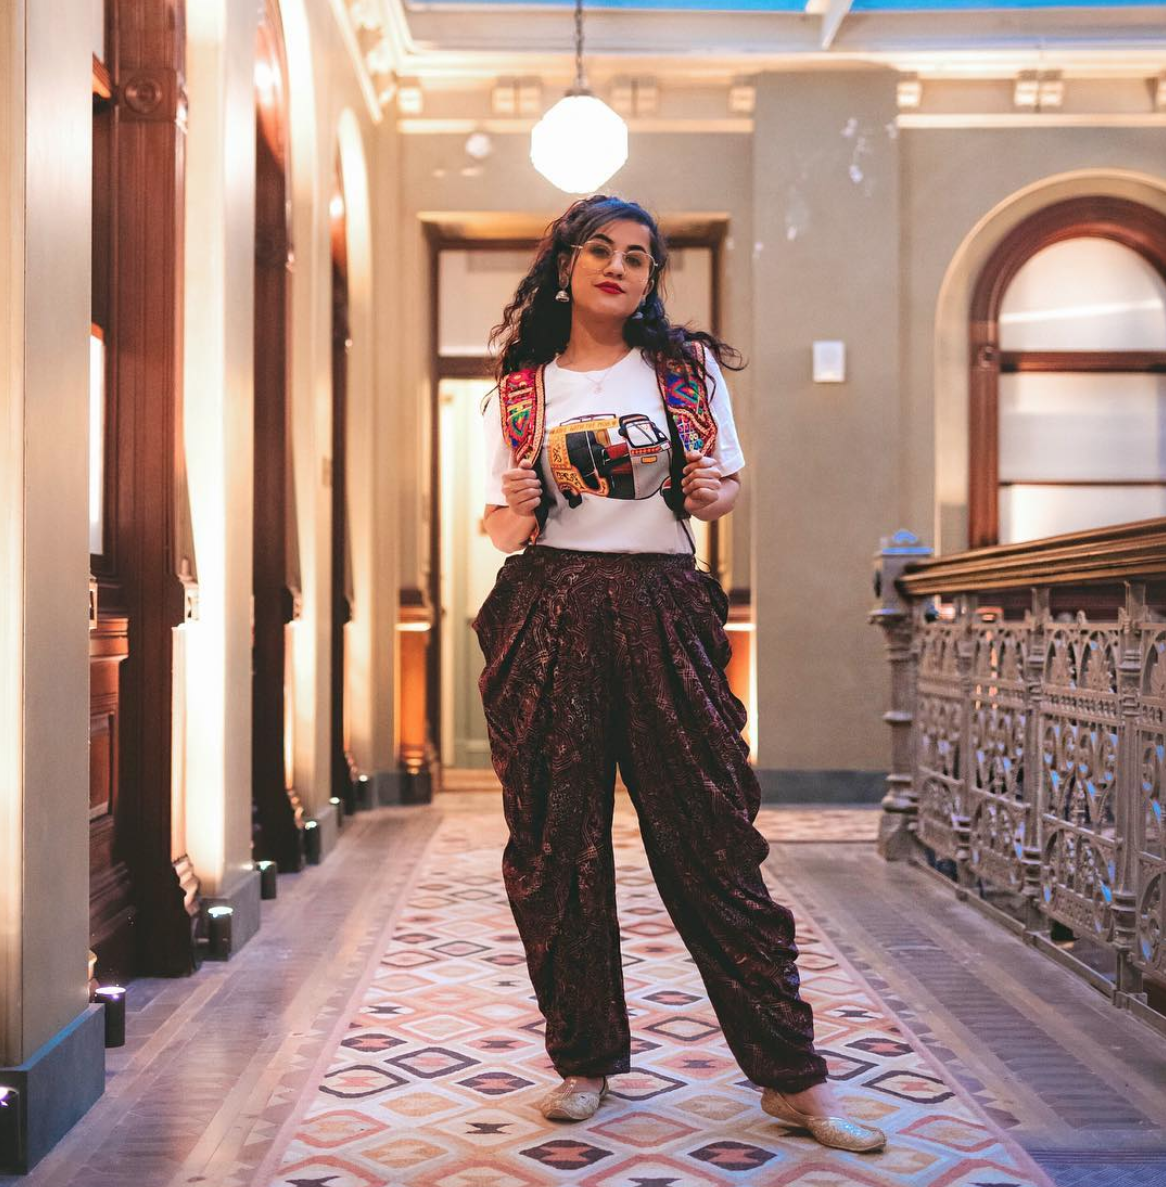 If you're not ready to ditch pants yet, these loose-fitting ones feel updated and chic. (Image via @ms.ahuha, Photo by{ }@_niharmakwana)